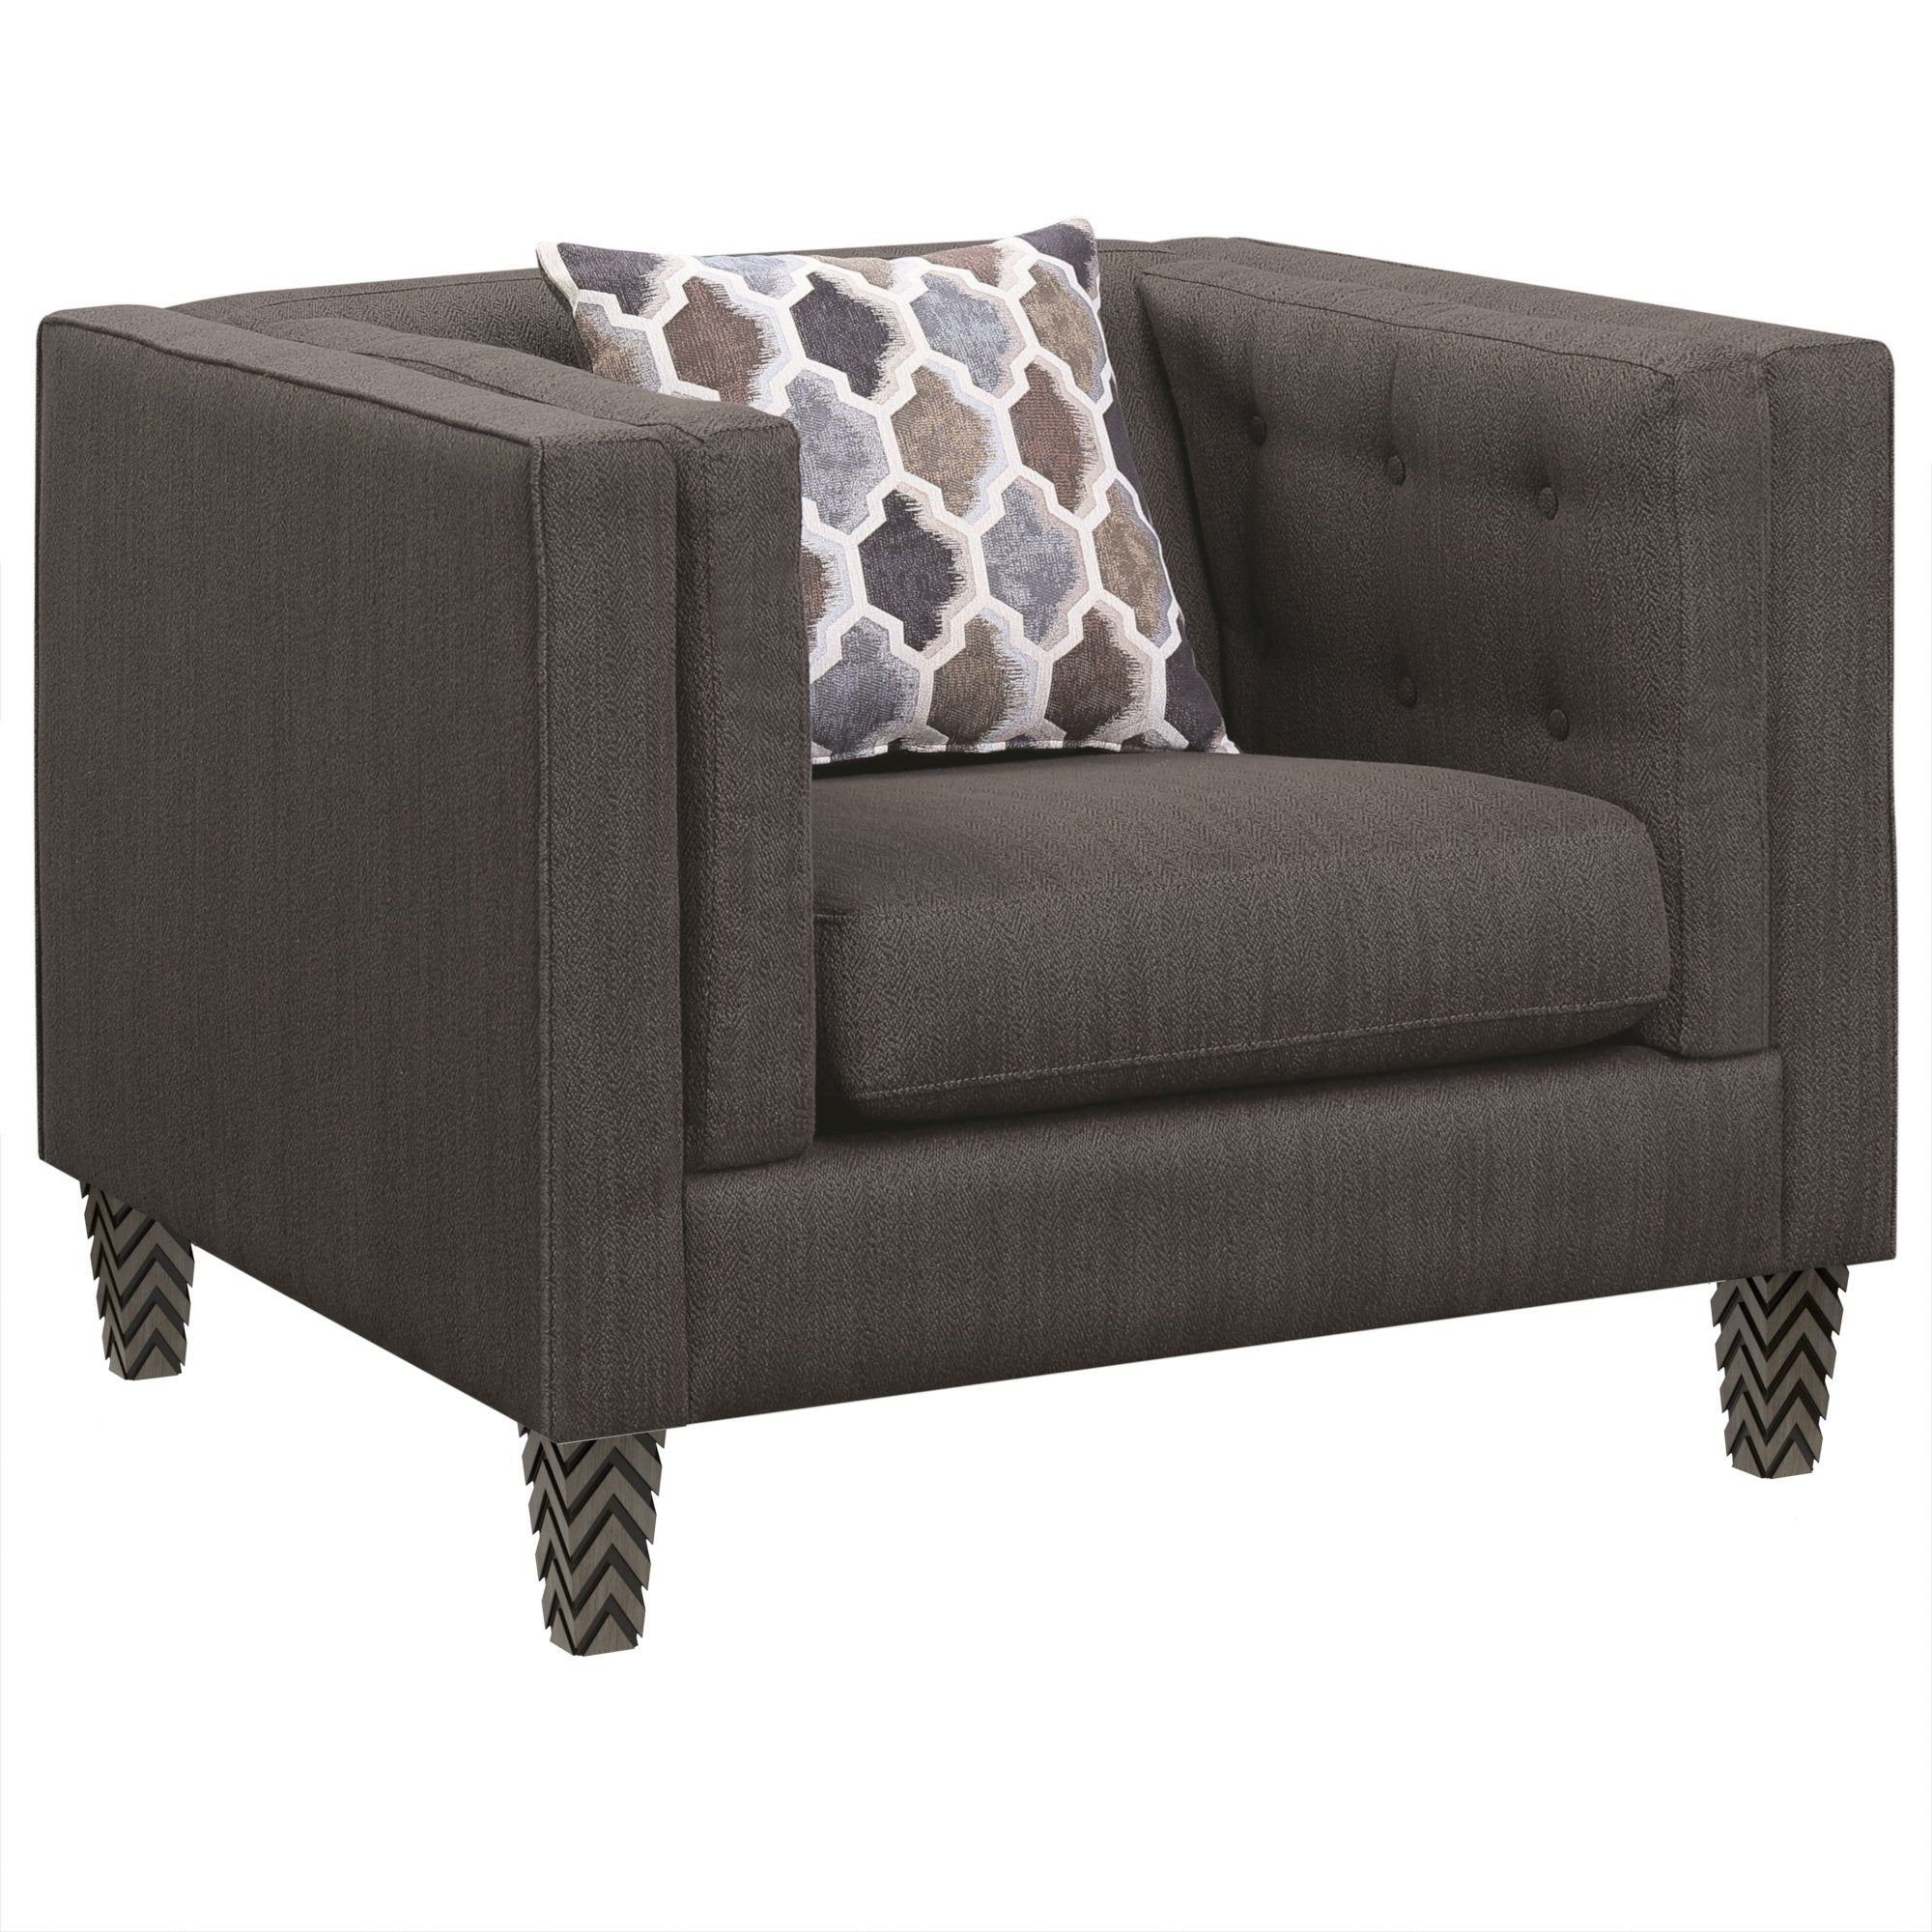 Santi Tufted Gray Chair with Geometric Pillow